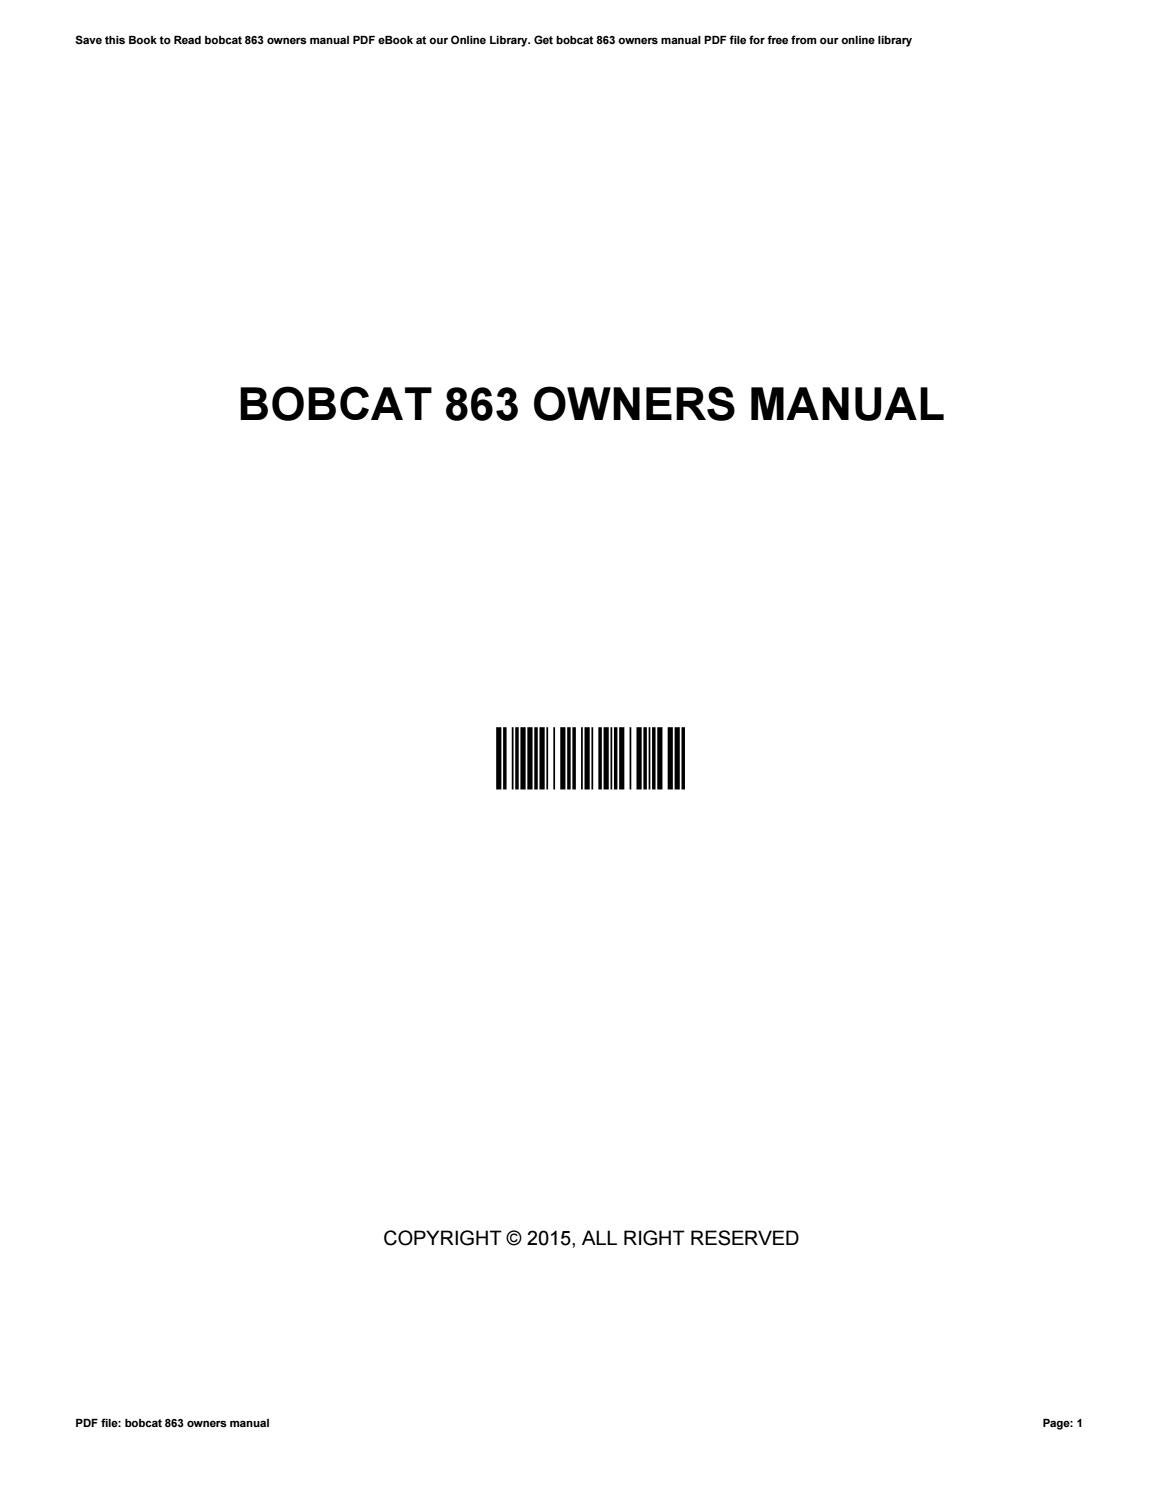 Cummins v504 service manual ebook array textron bobcat 970003 owners manual user guide manual that easy to rh gatewaypartners co fandeluxe Choice Image